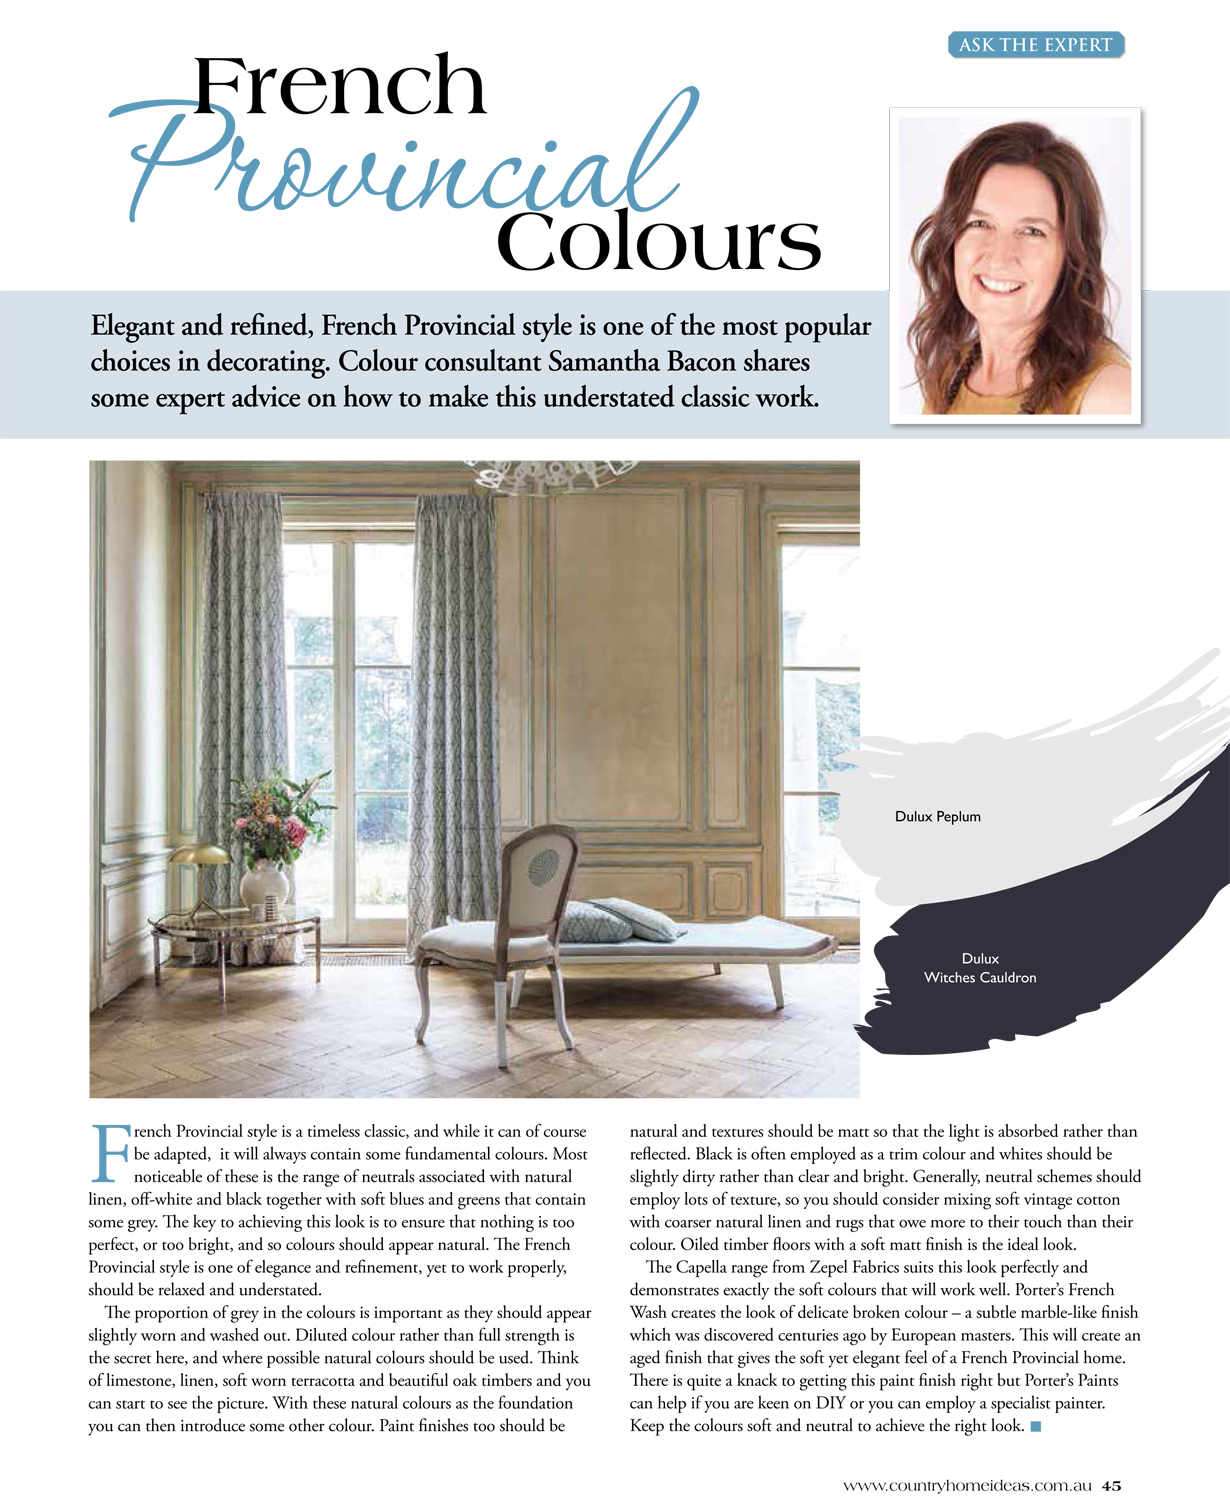 Country Home Ideas magazine - French Provincial Colours